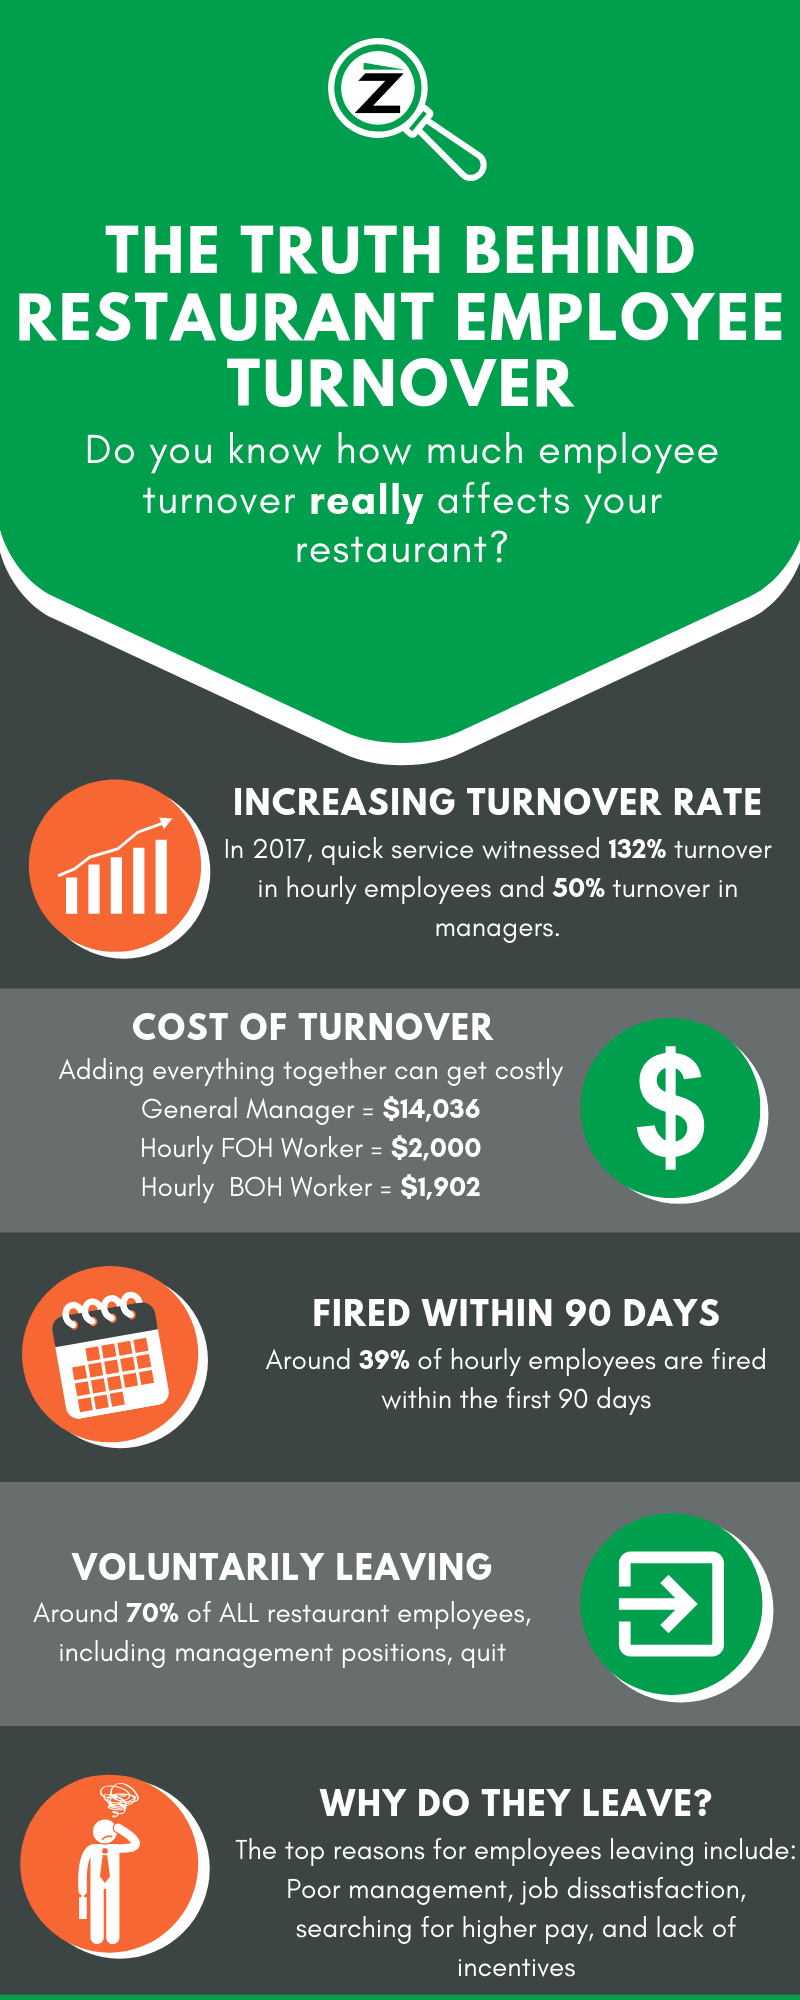 Sources:  https://www.qsrmagazine.com/employee-management/labor-tips-2019-everything-restaurants-need-know  https://restauranttechnologyguys.com/the-cost-of-restaurant-employee-turnover/  https://decisionlogic.co/restaurant-employee-turnover-cost/